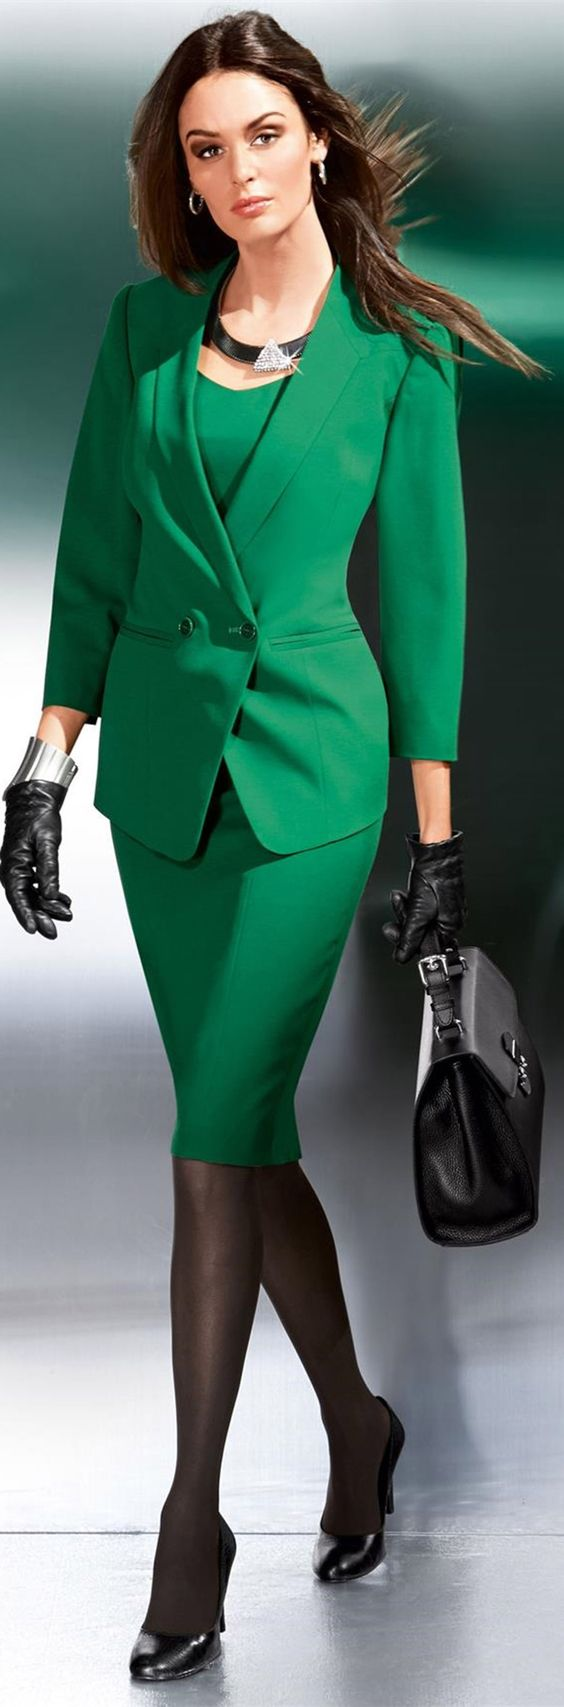 I love a simple shift dress paired with a classic jacket, the black hosiery and patent leather pumps really make the emerald green of this outfit stand out.